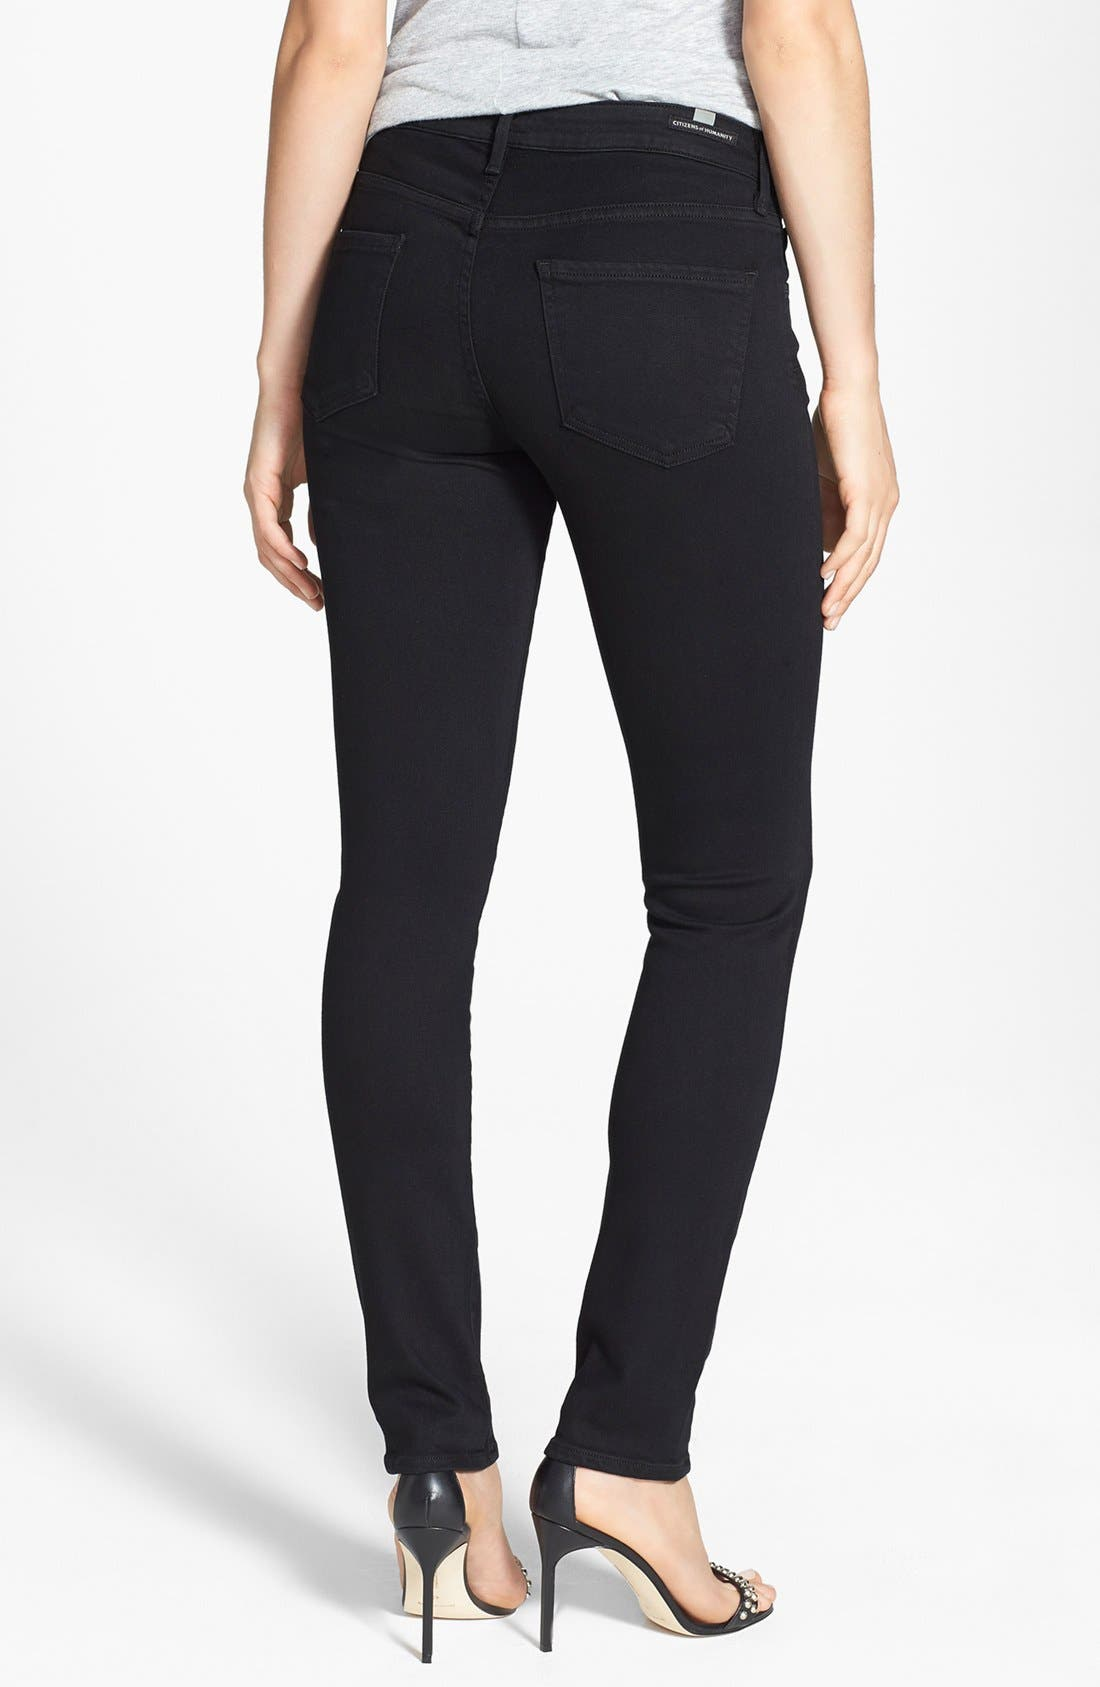 Alternate Image 2  - Citizens of Humanity 'Arielle' Mid Rise Slim Jeans (Tuxedo)